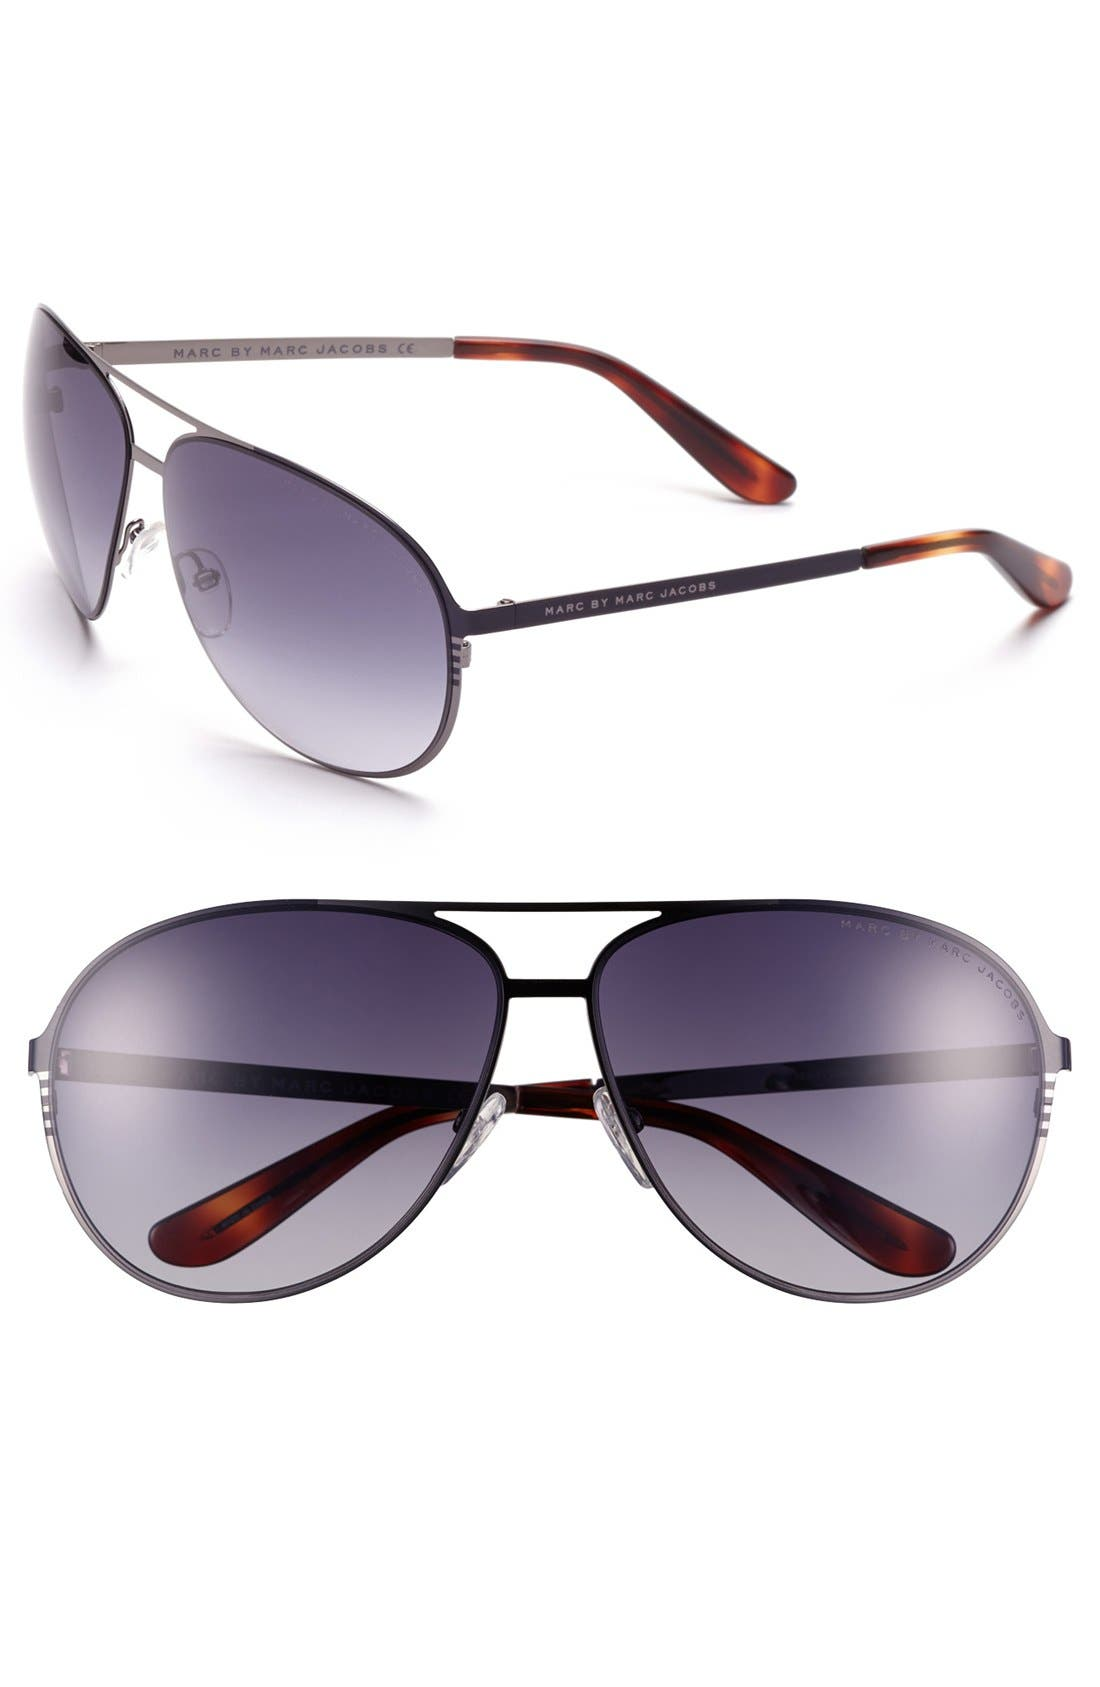 Main Image - MARC BY MARC JACOBS 58mm Aviator Sunglasses